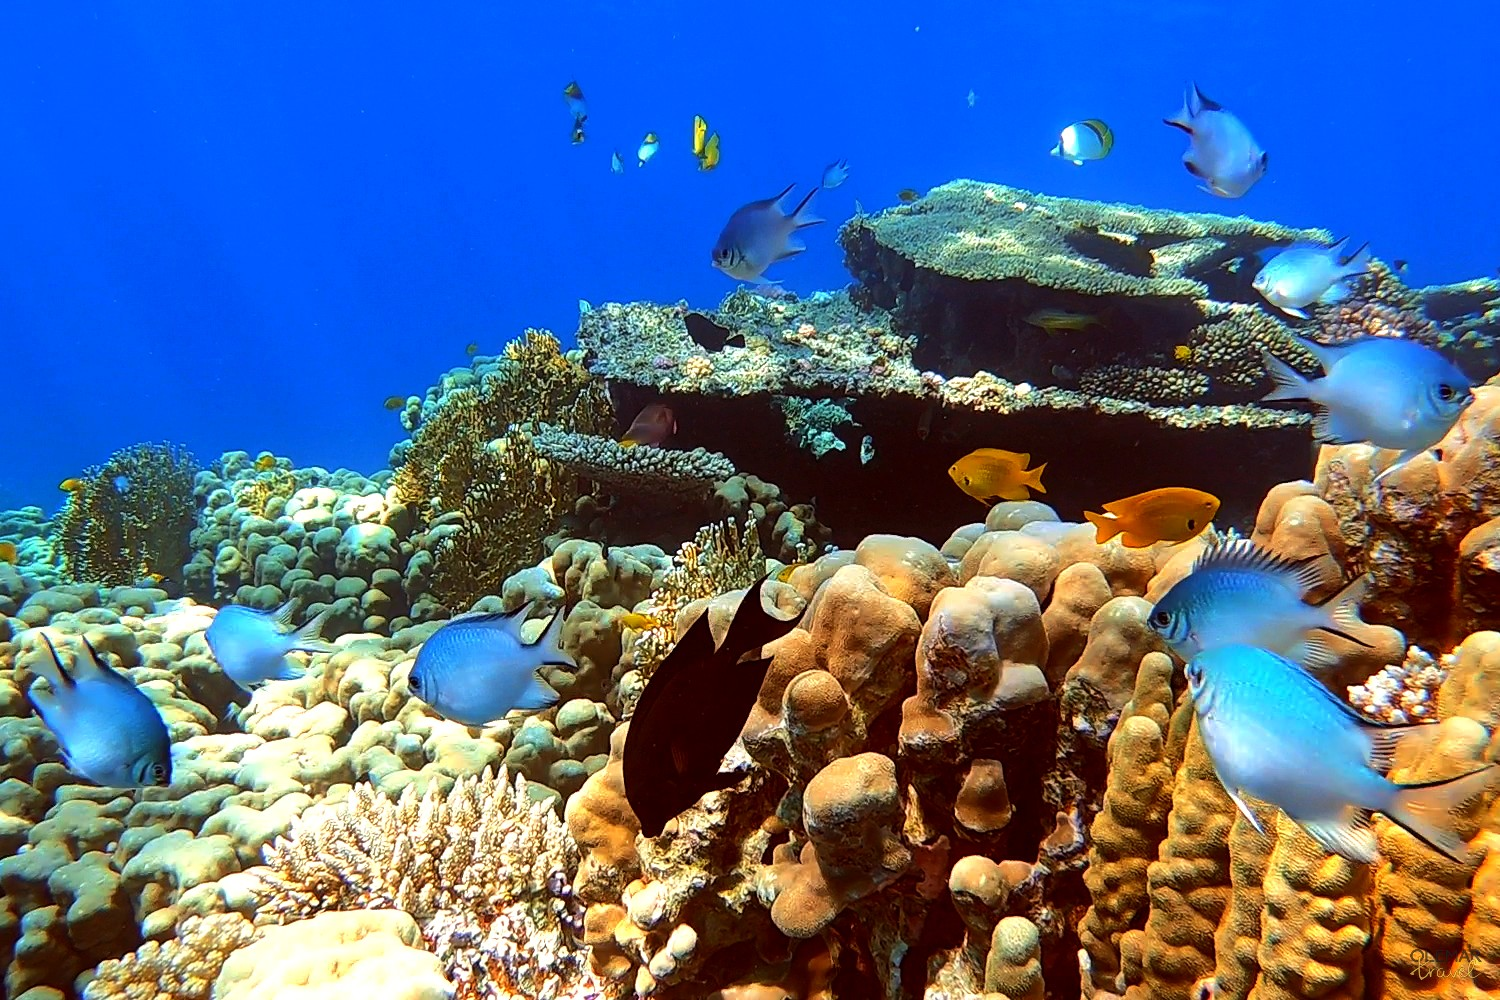 Red Sea 2 Dives Introduction To Scuba Diving